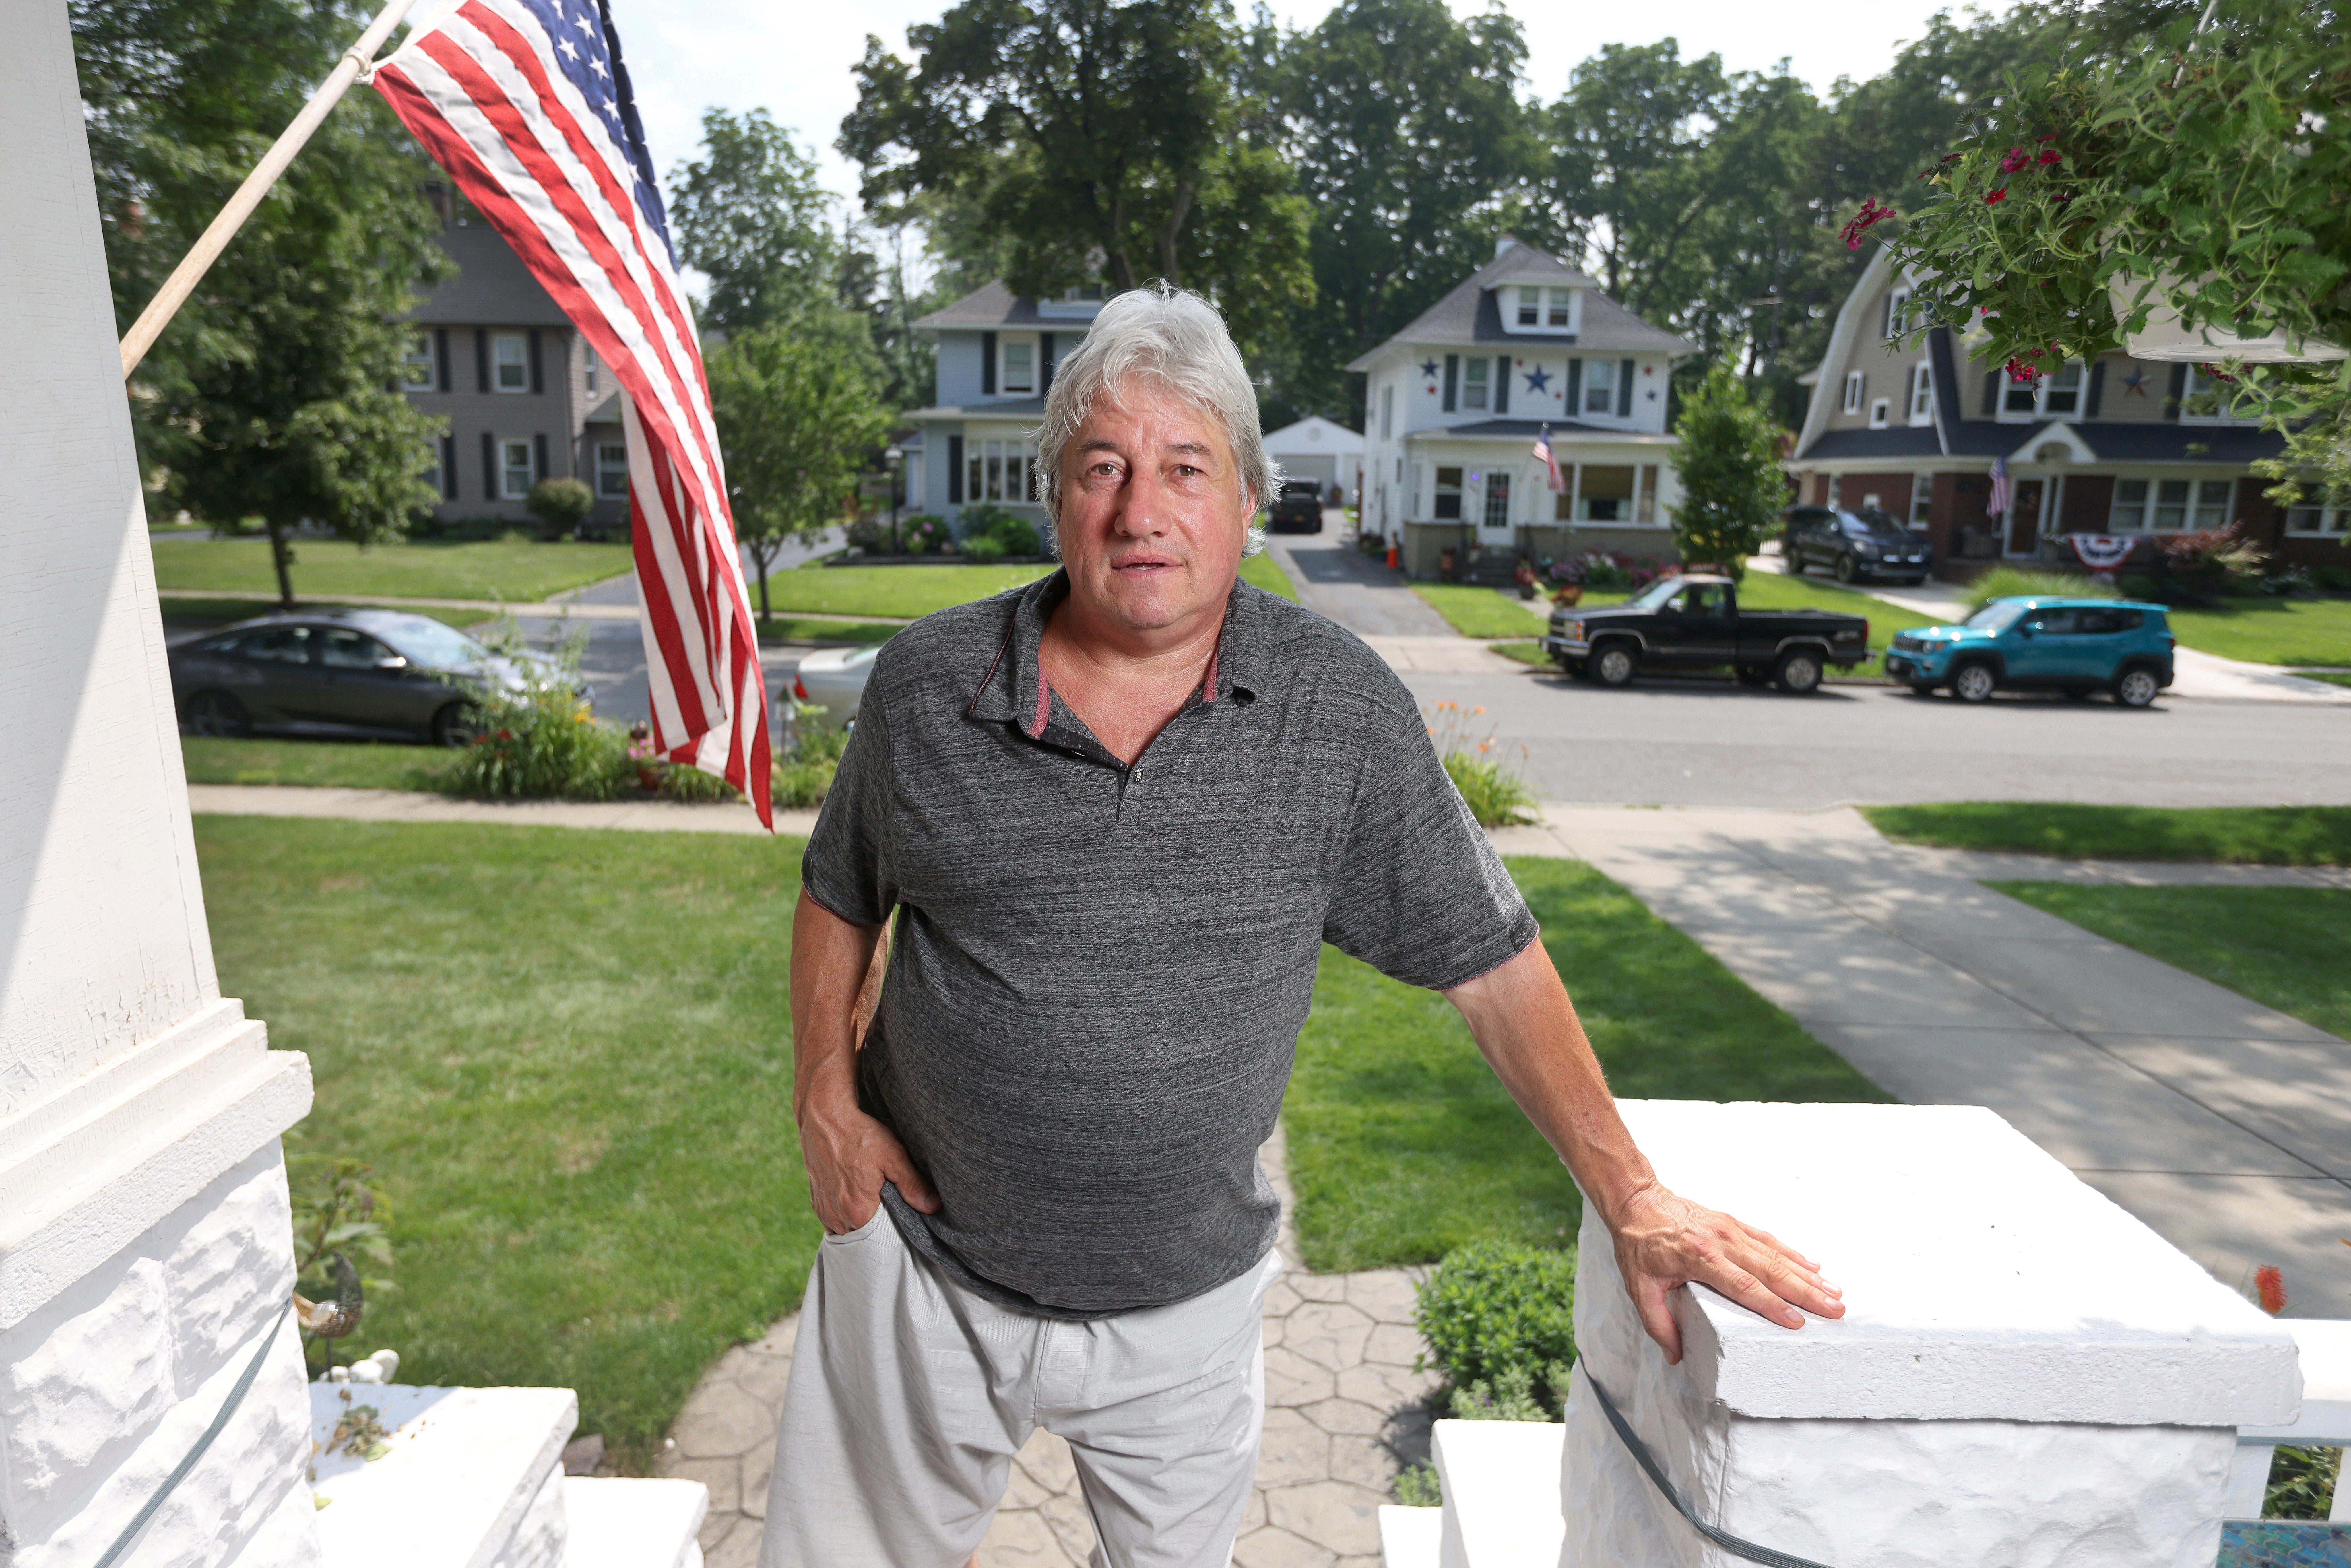 Ron Gaca of Lancaster, a Buffalo suburb, spends much of his time on the front porch. He wants to go back to work pouring concrete but his lingering Covid-19 ailments include fatigue and tremors in his right arm and hand.